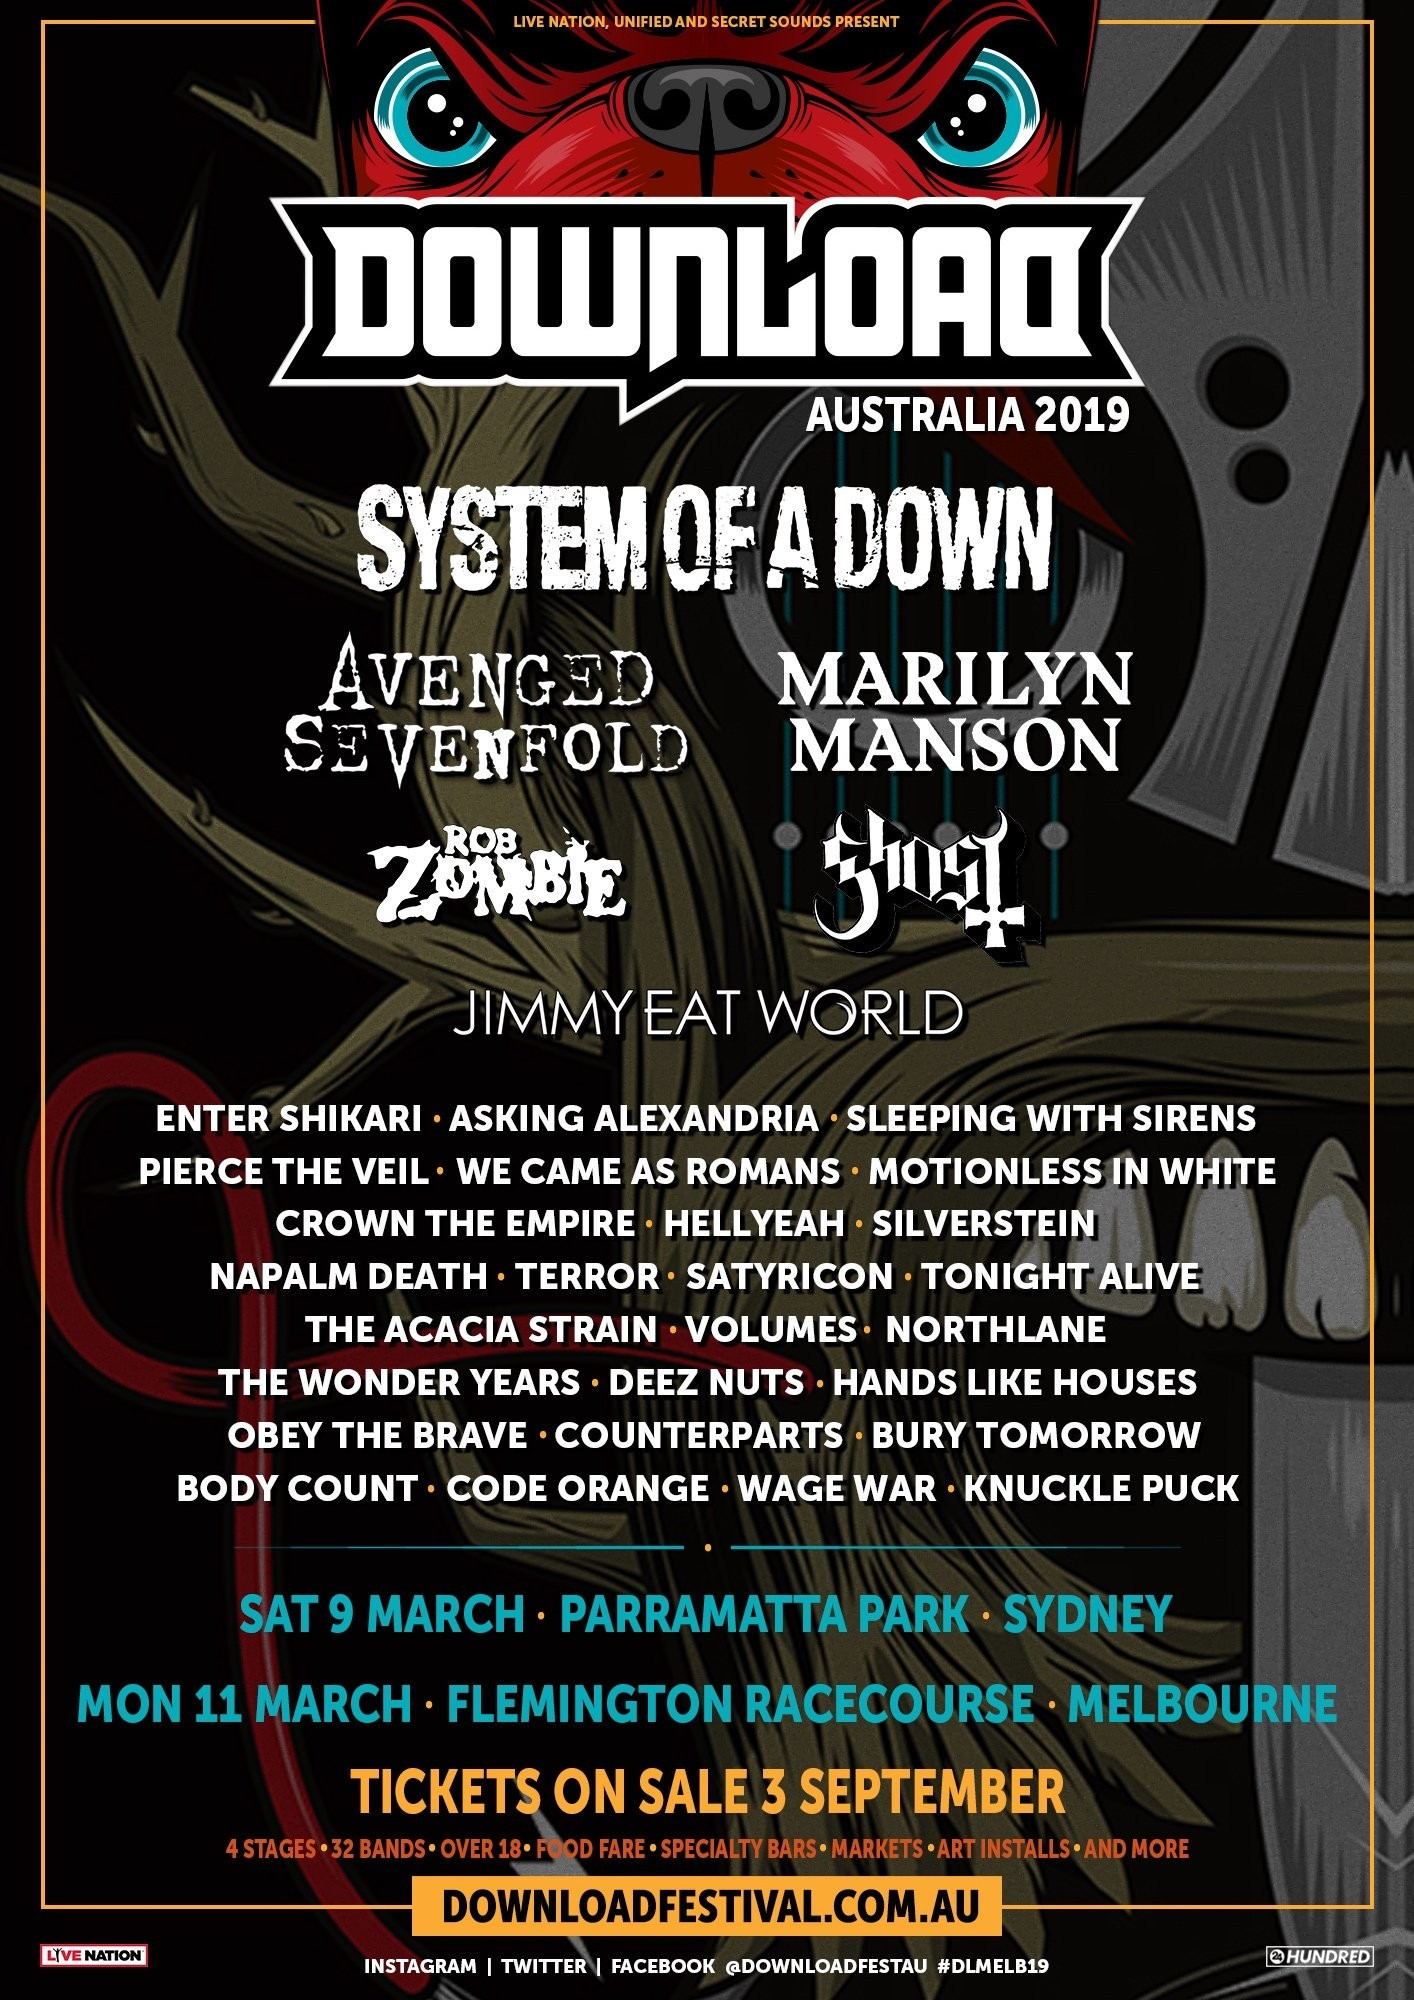 Yep That Download Festival Australia 2019 Lineup Poster Is Fake to expand